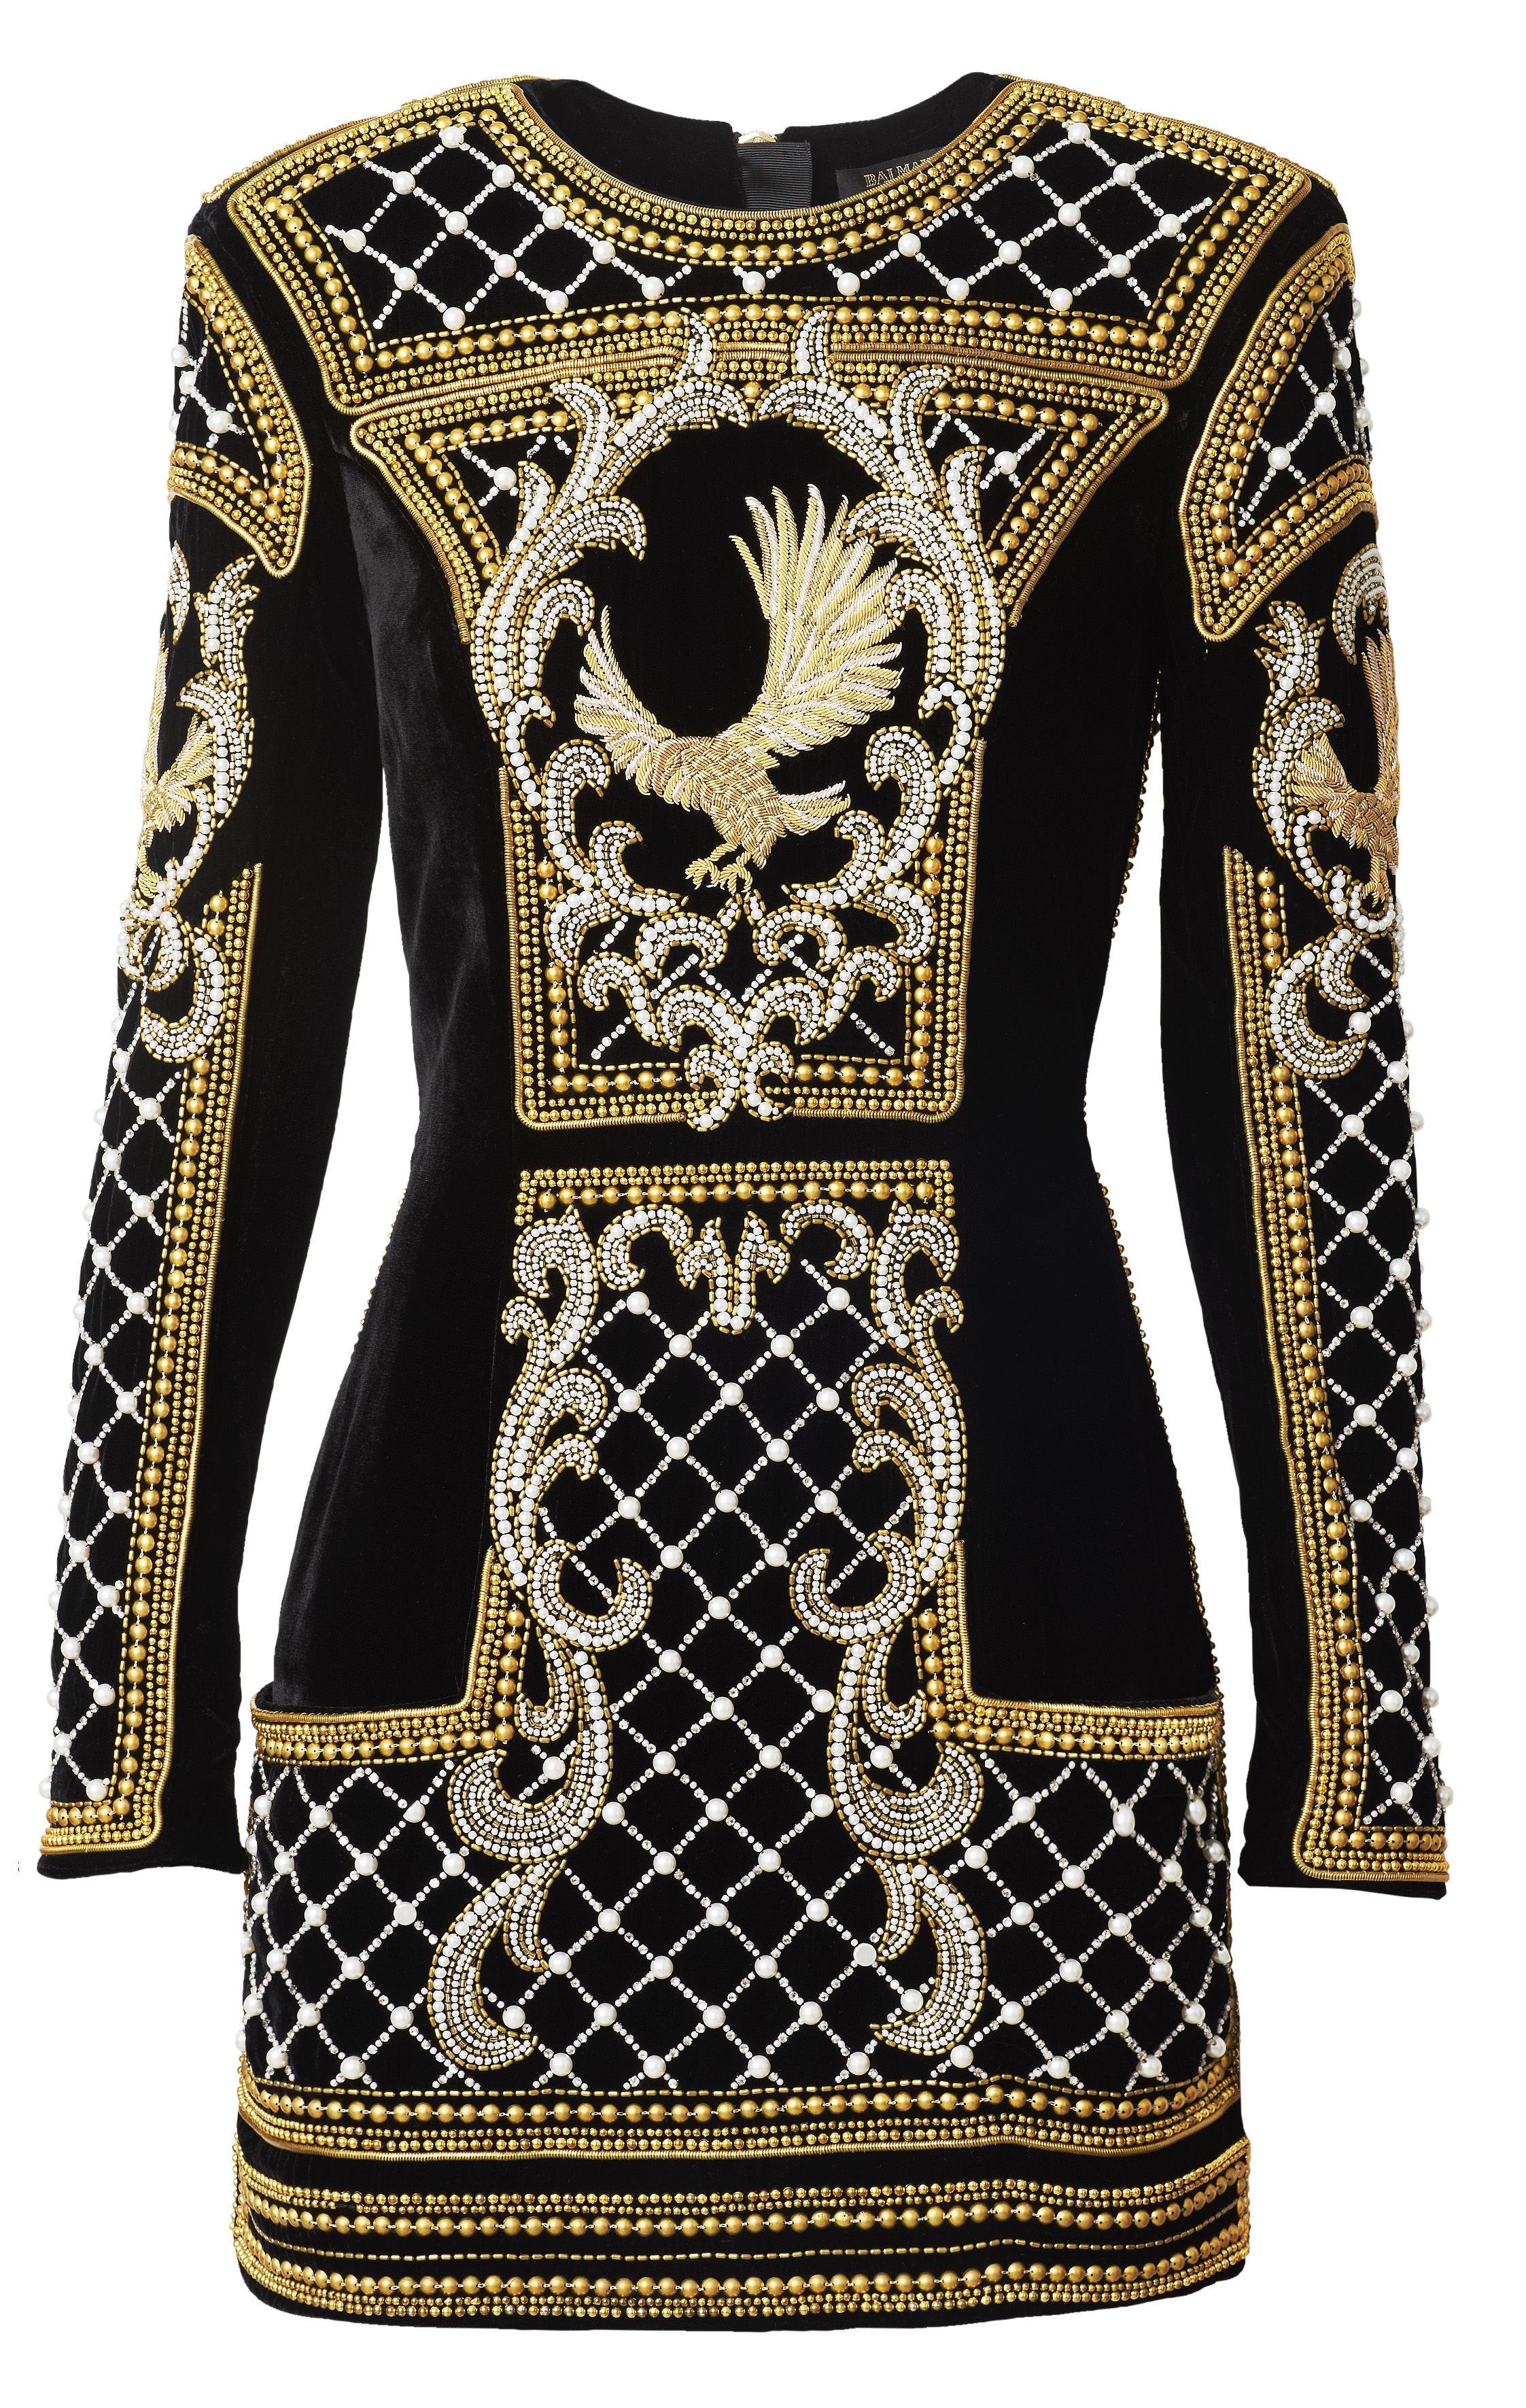 2019 year style- Collection x hm balmain prices